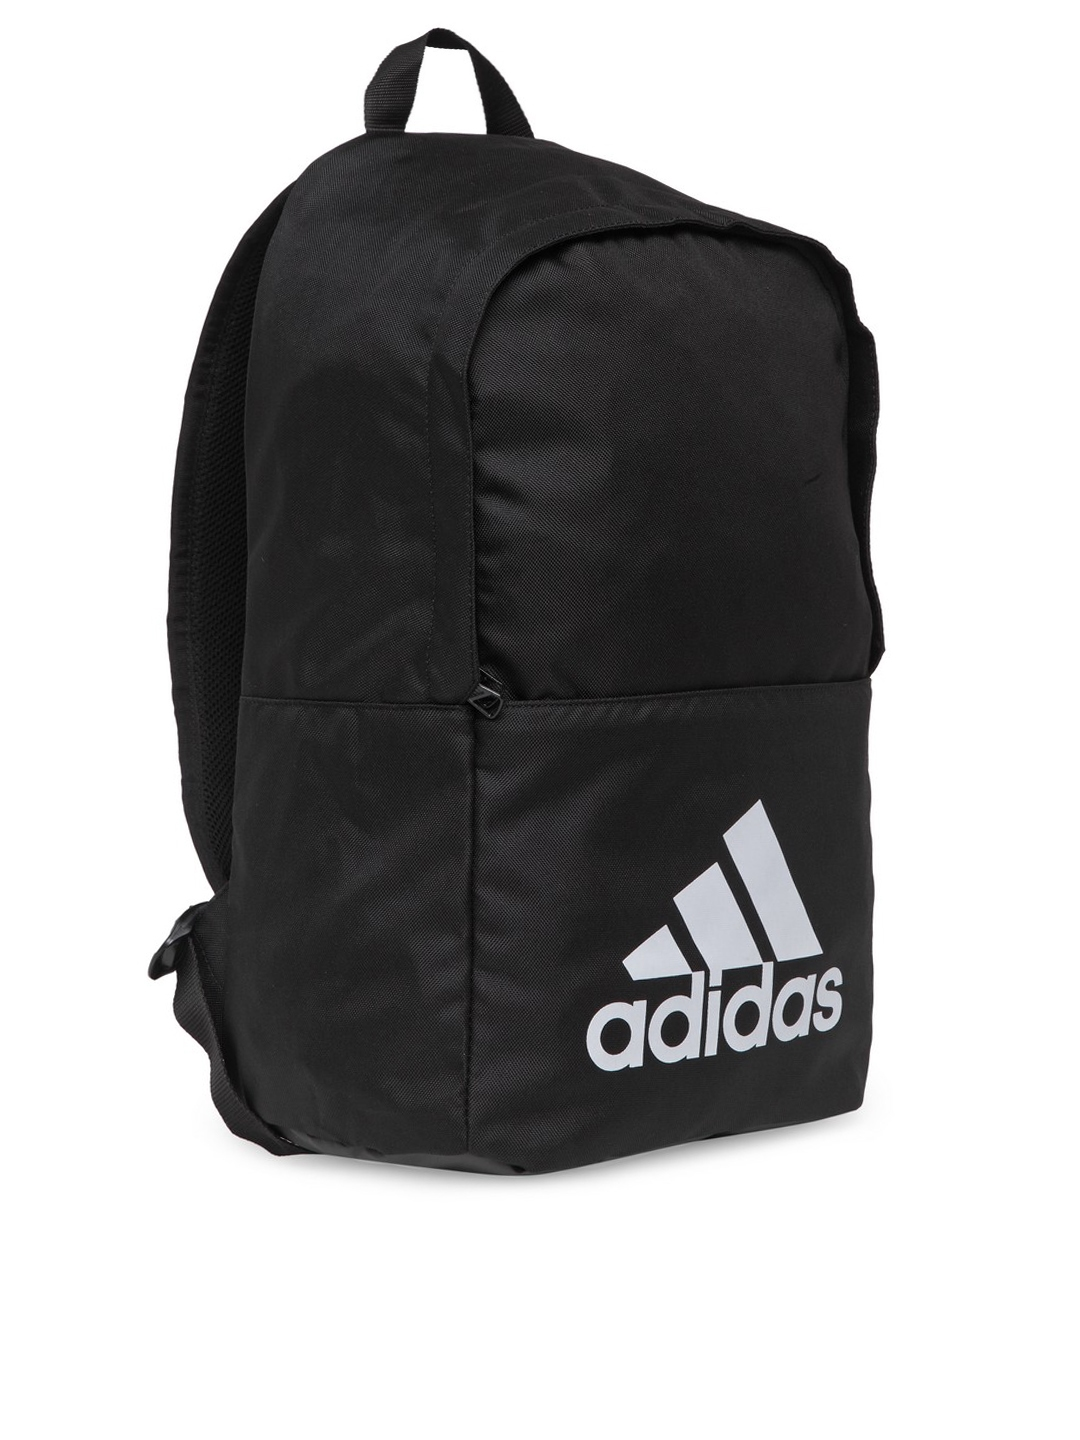 25d3456a7537 Buy Adidas Unisex Black Classic Laptop Backpack - Backpacks for ...